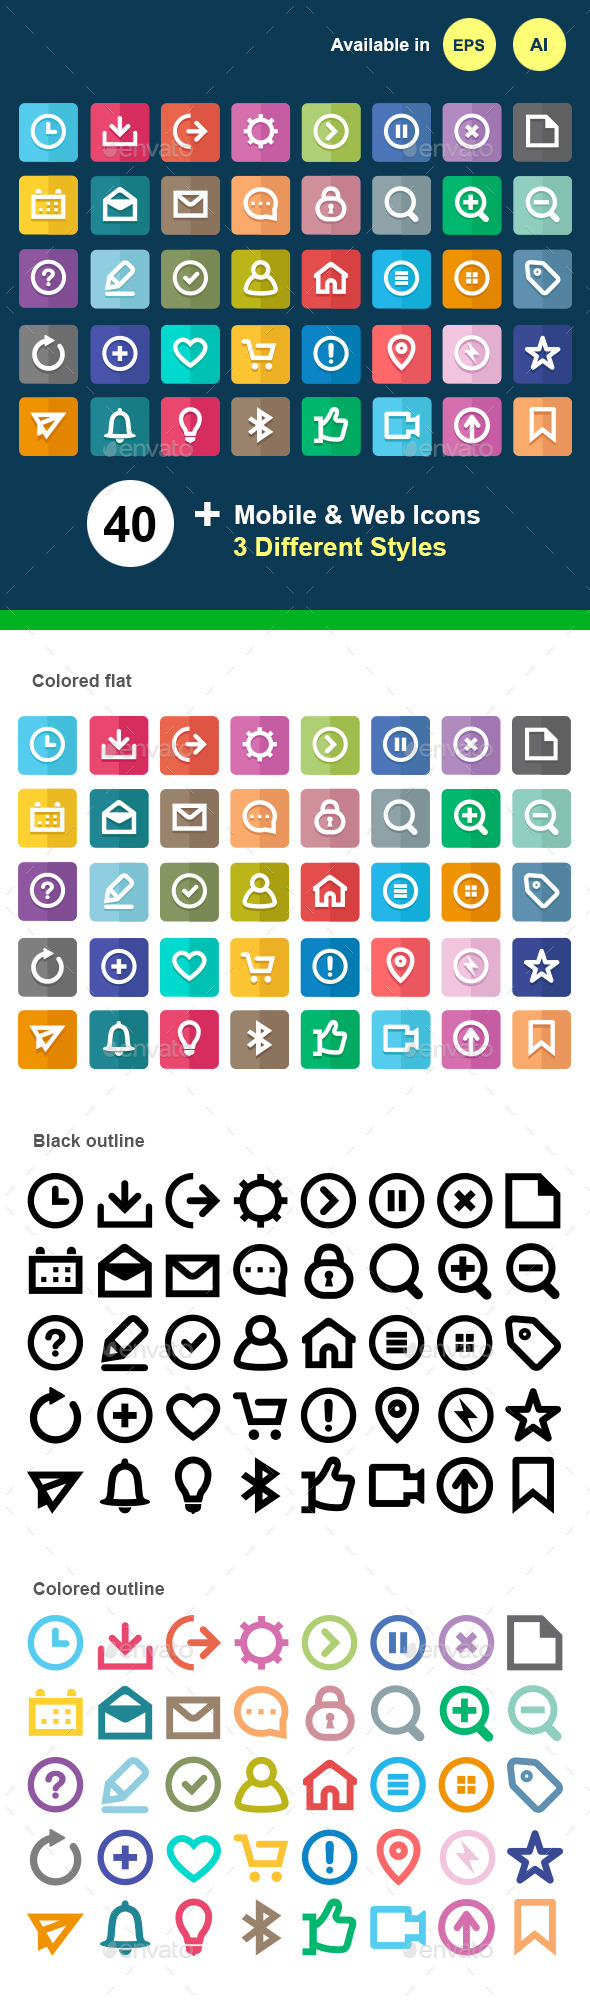 GraphicRiver Mobile & Web UI Icons 11956802